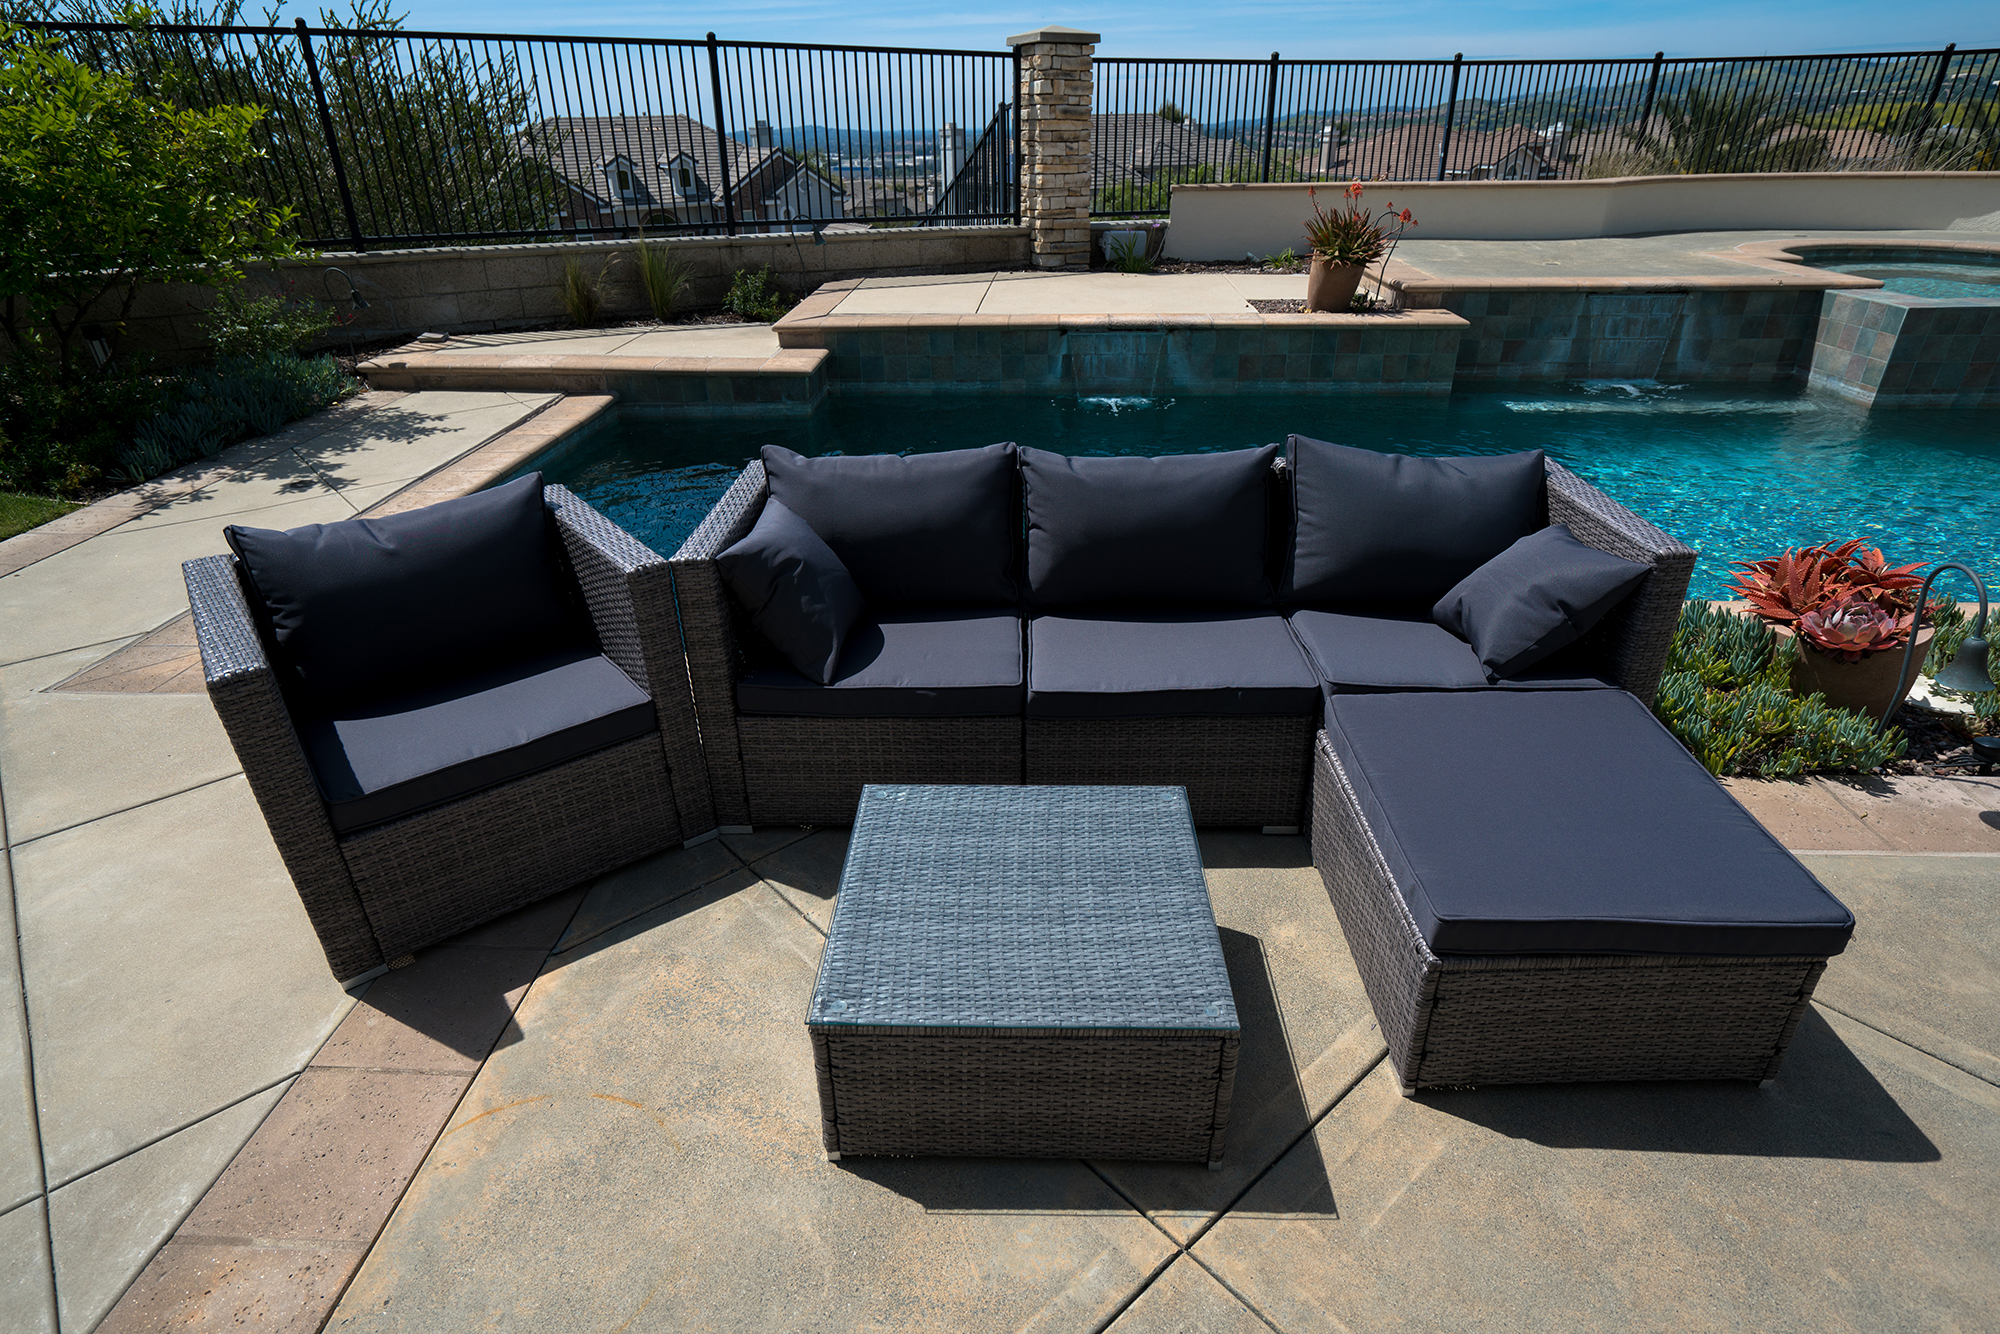 Outdoor Couch Set 6pc Outdoor Patio Furniture Sectional Rattan Wicker Sofa